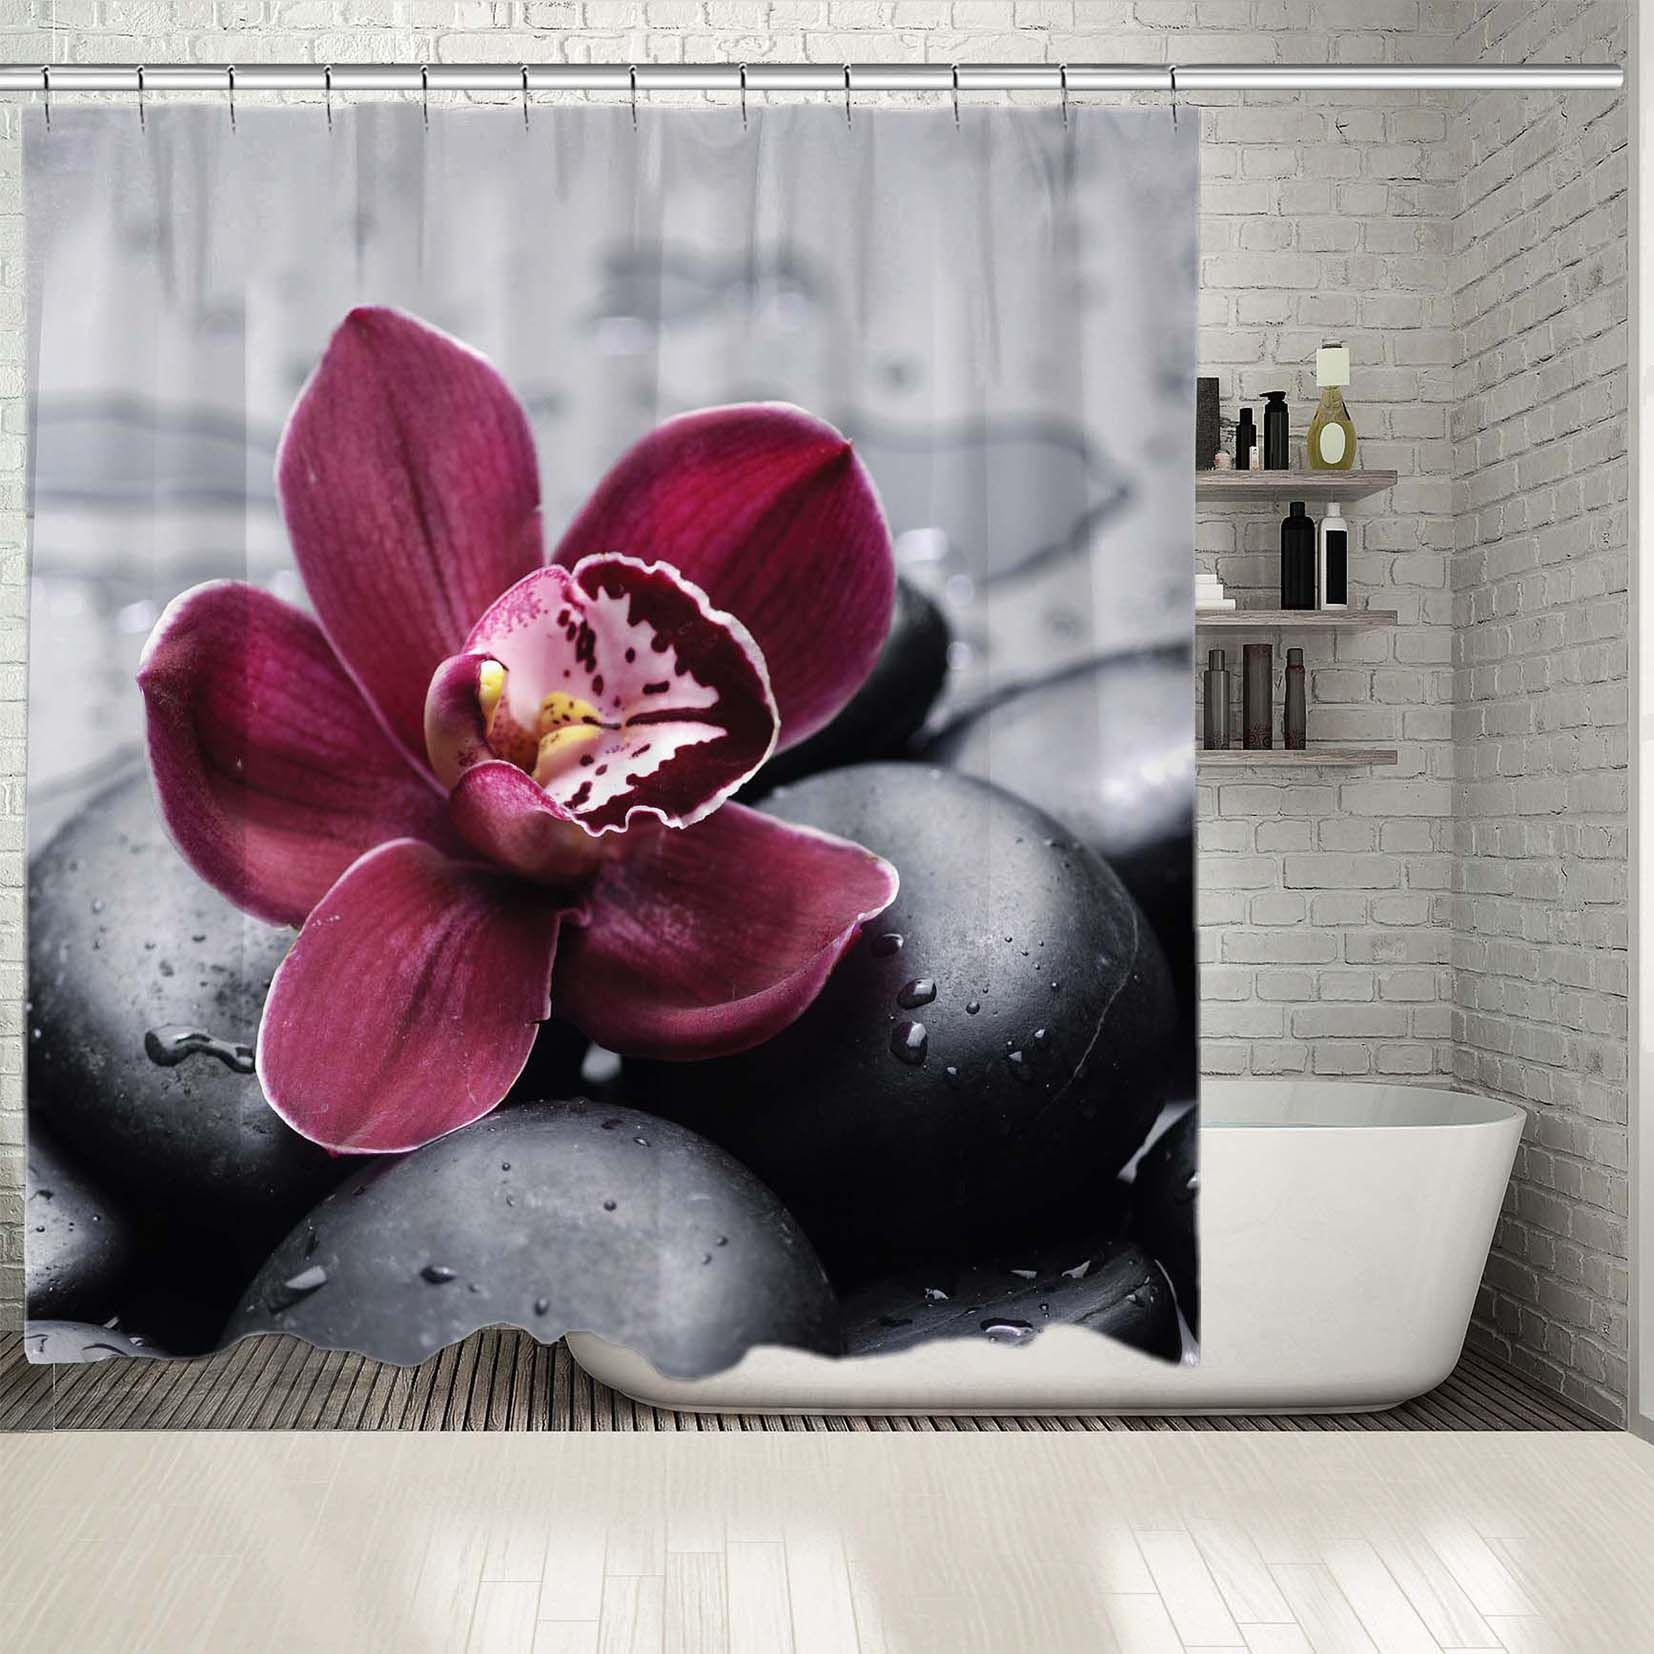 Shower Curtain Orchid On Spa Stones Waterdrops Exotic Relaxing Aromatherapy Concept Photo Burgundy Black Shower Curtains Aliexpress